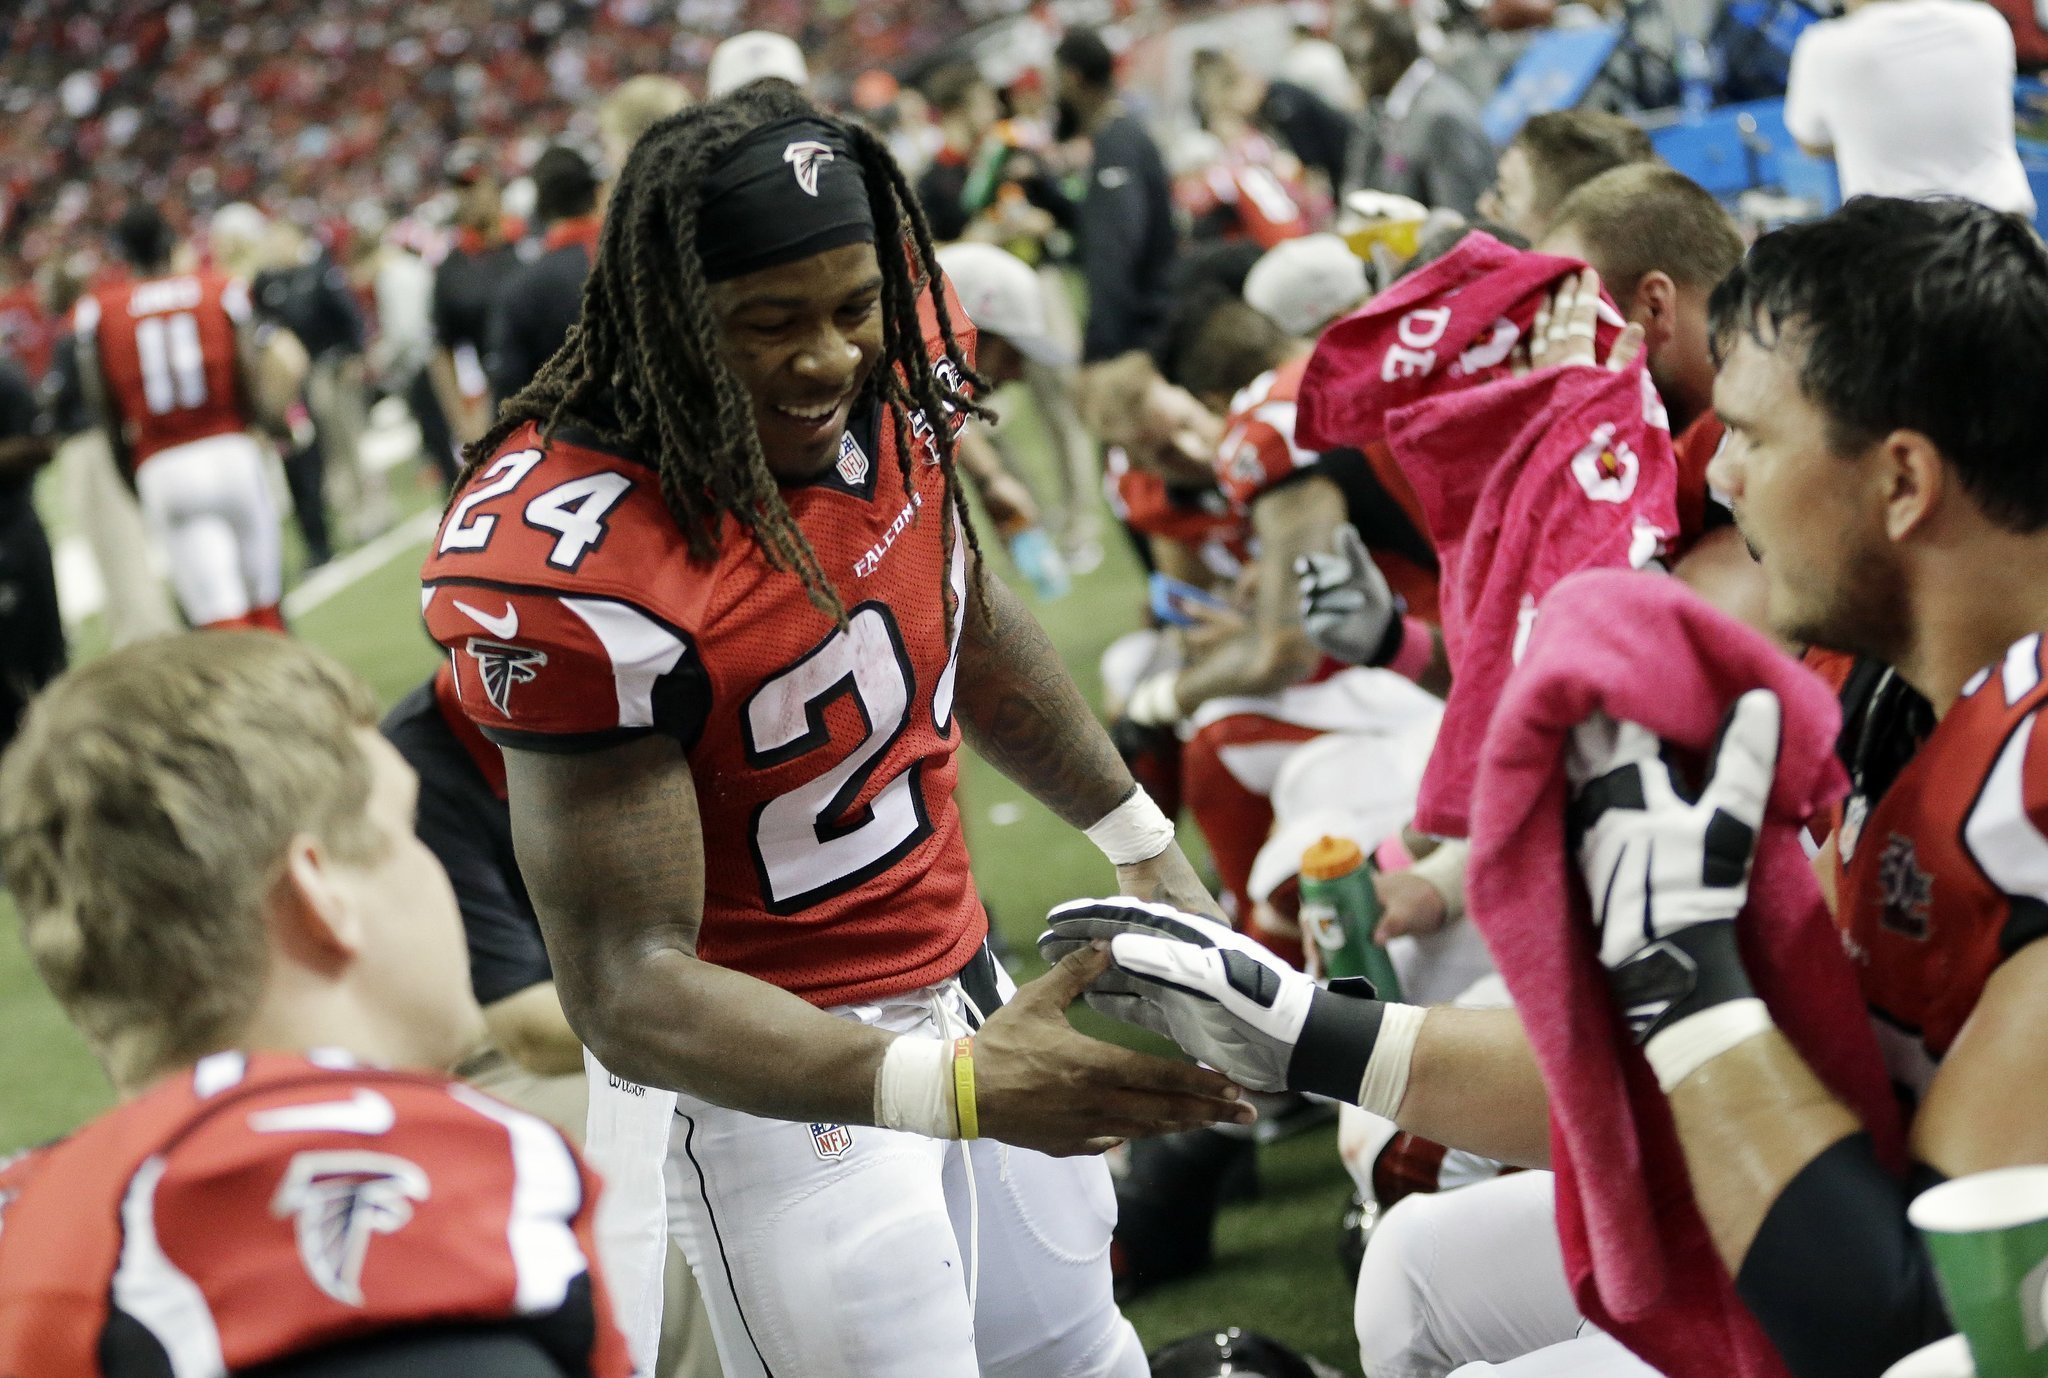 Falcons Freeman will have more help at RB against Redskins The